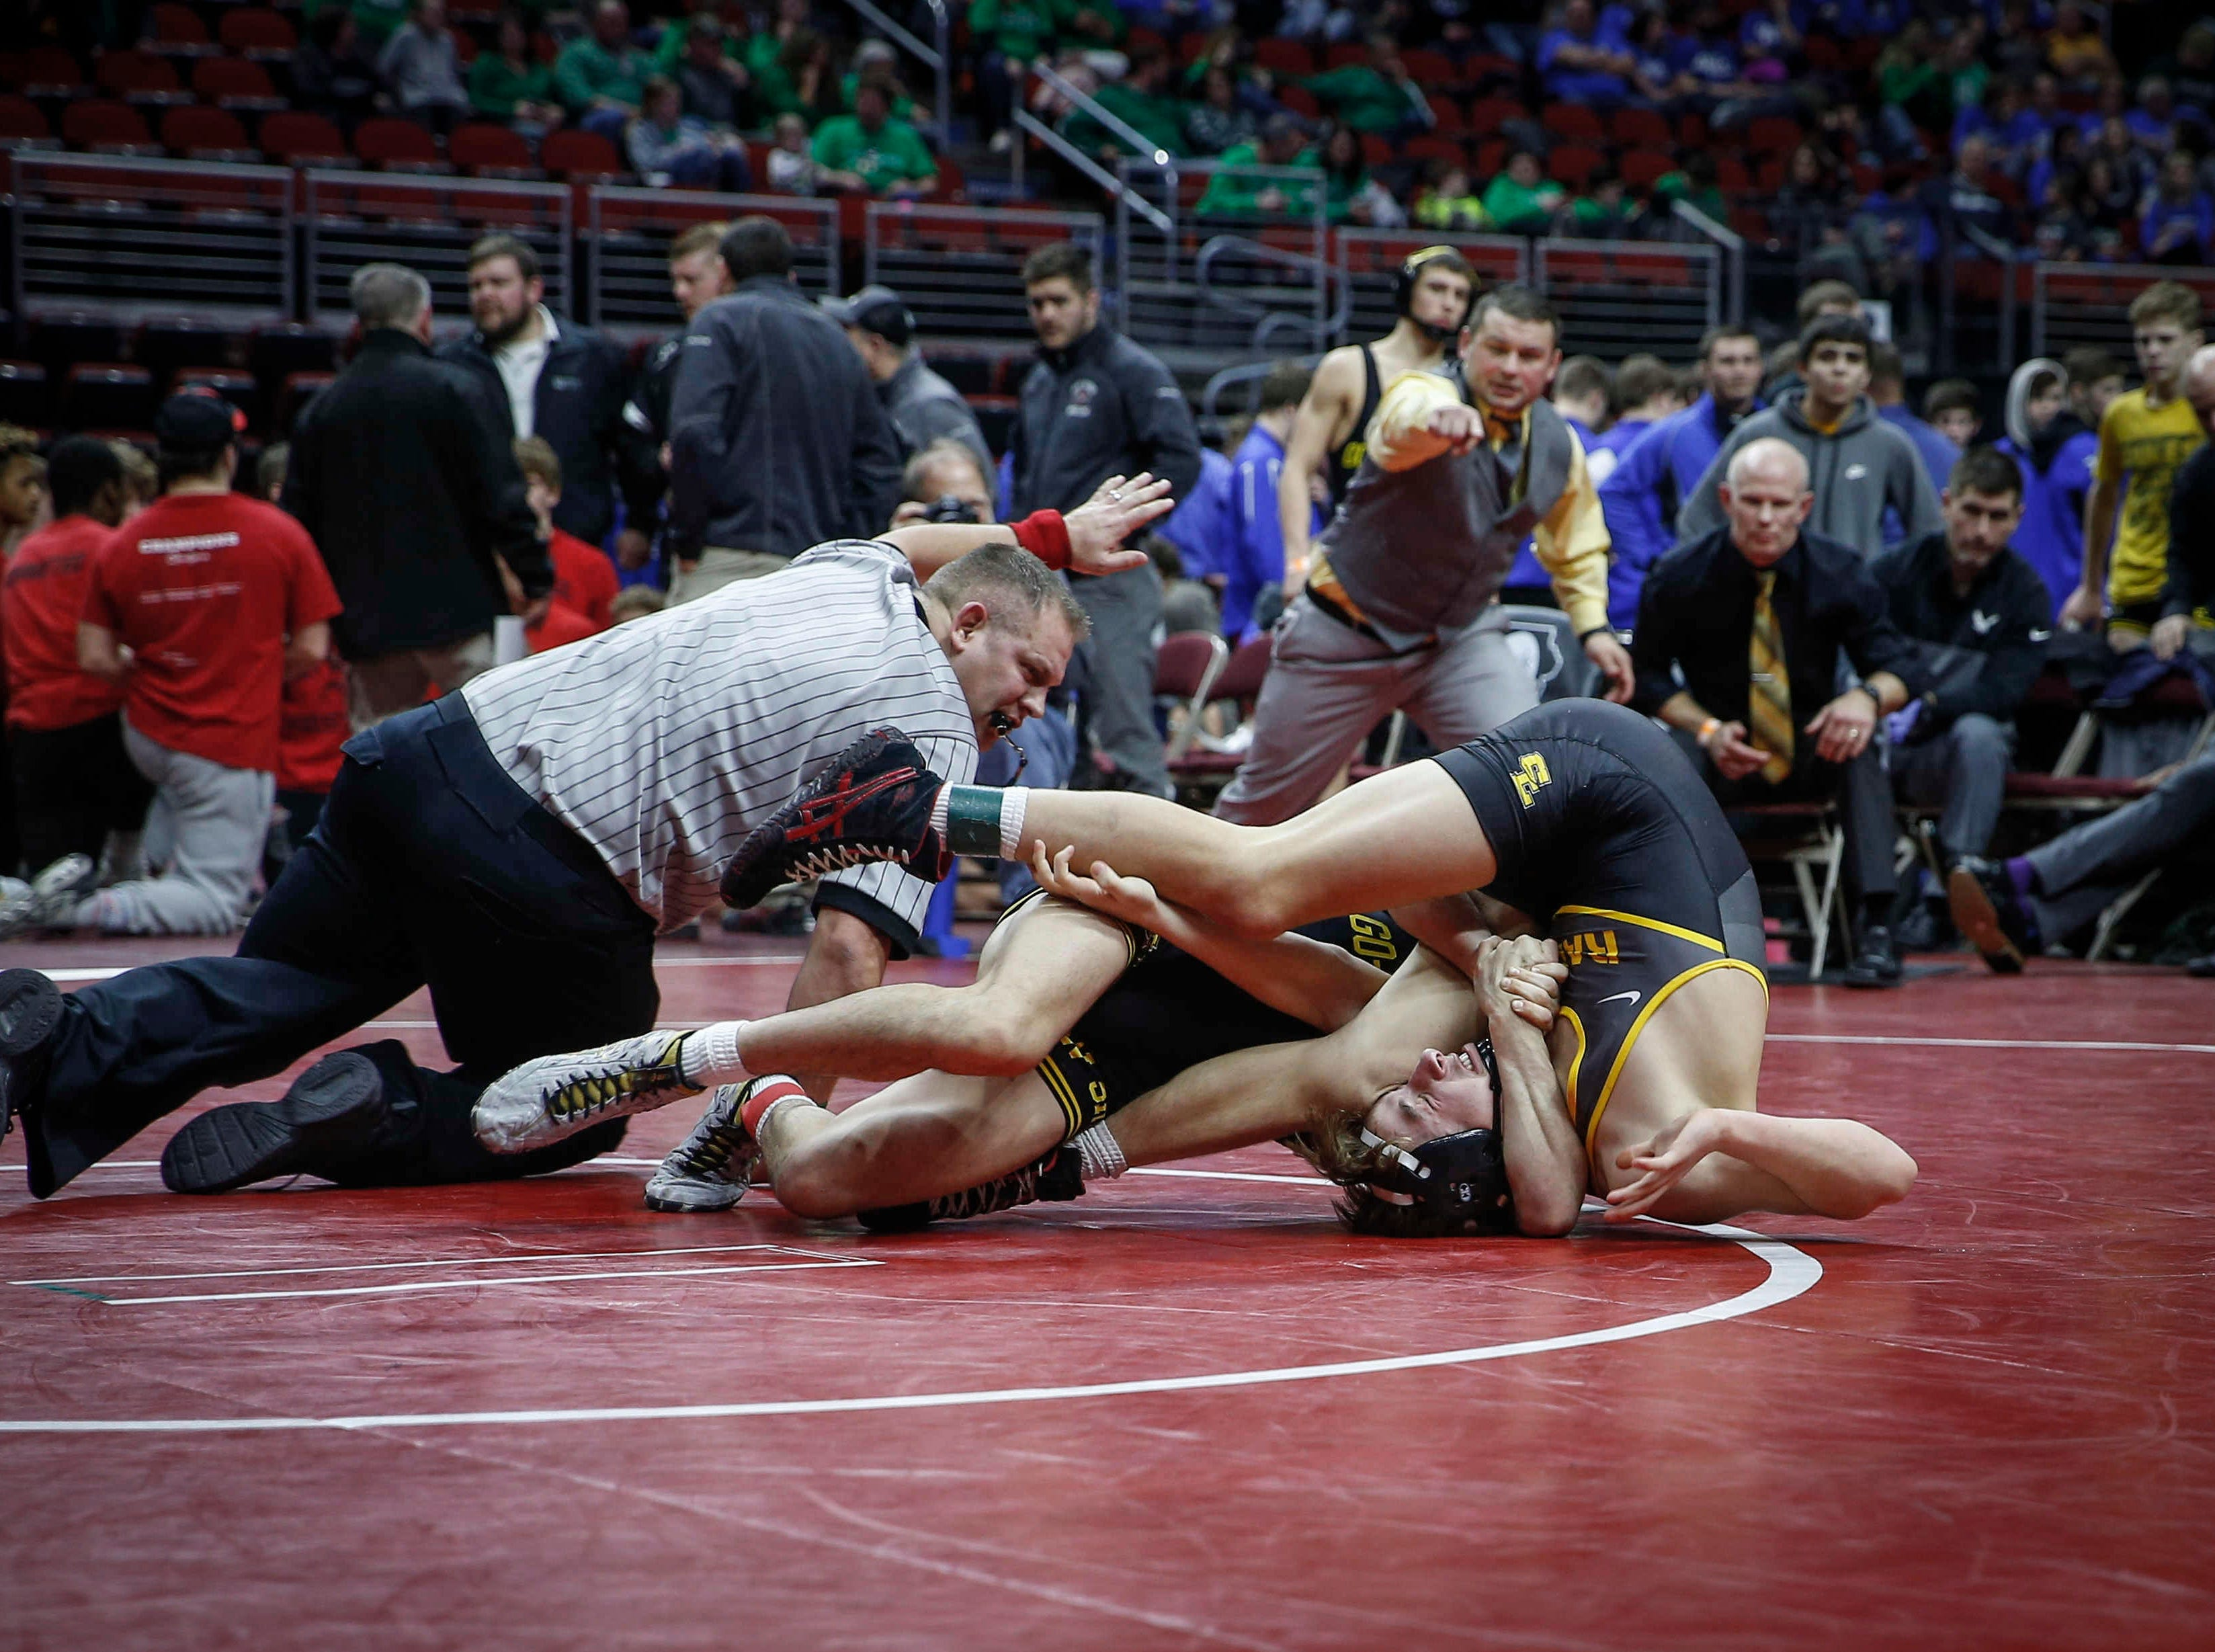 Waverly-Shell Rock's Dylan Albrecht pins Southeast Polk's Carter Martinson at 126 pounds during the 2019 Iowa high school dual wrestling state tournament on Wednesday, Feb. 13, 2019, at Wells Fargo Arena in Des Moines.